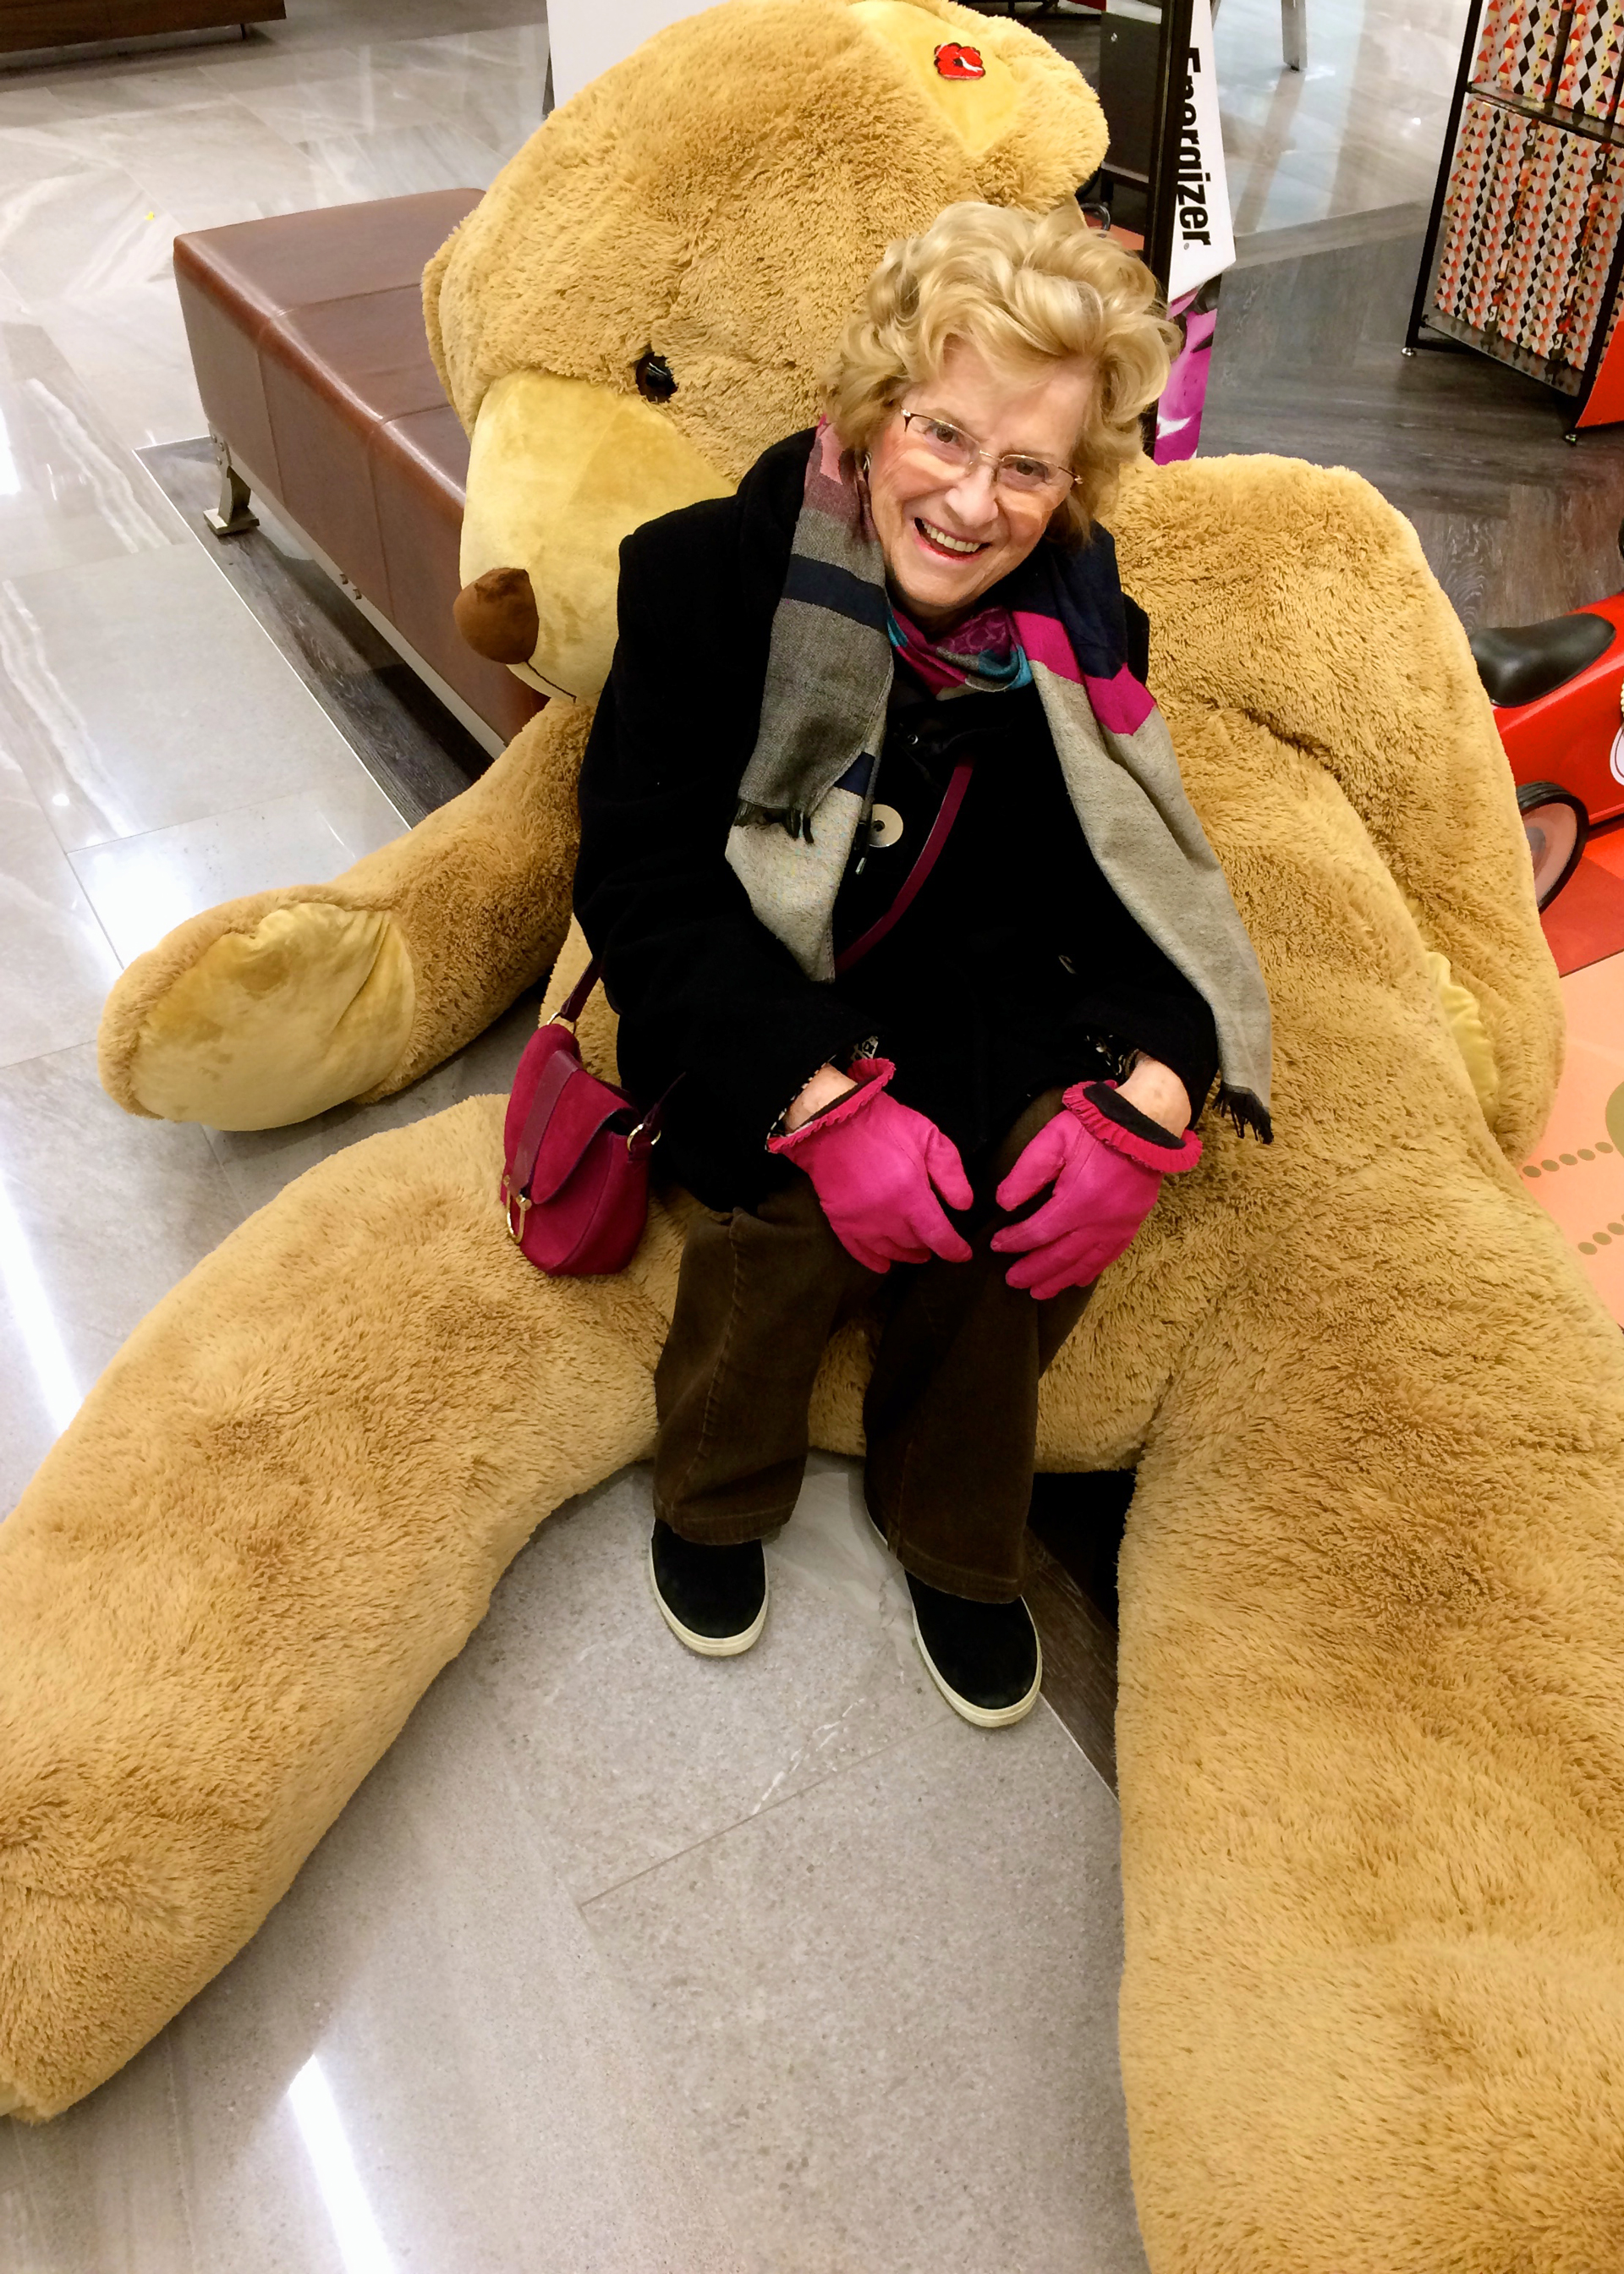 Jacqueline and big teddy bear.